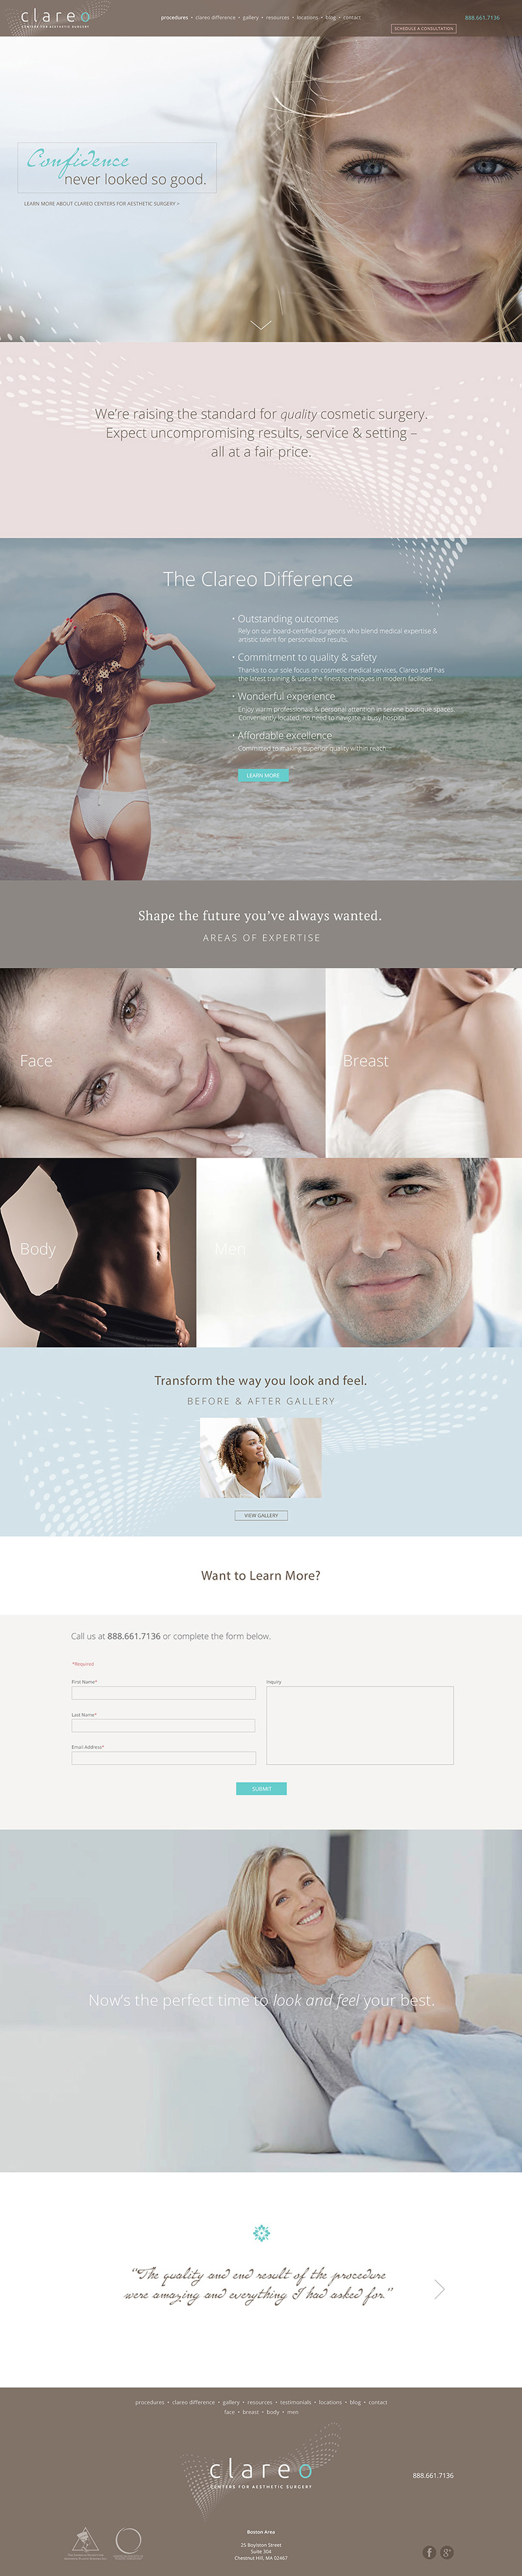 Clareo Centers for Aesthetic Surgery